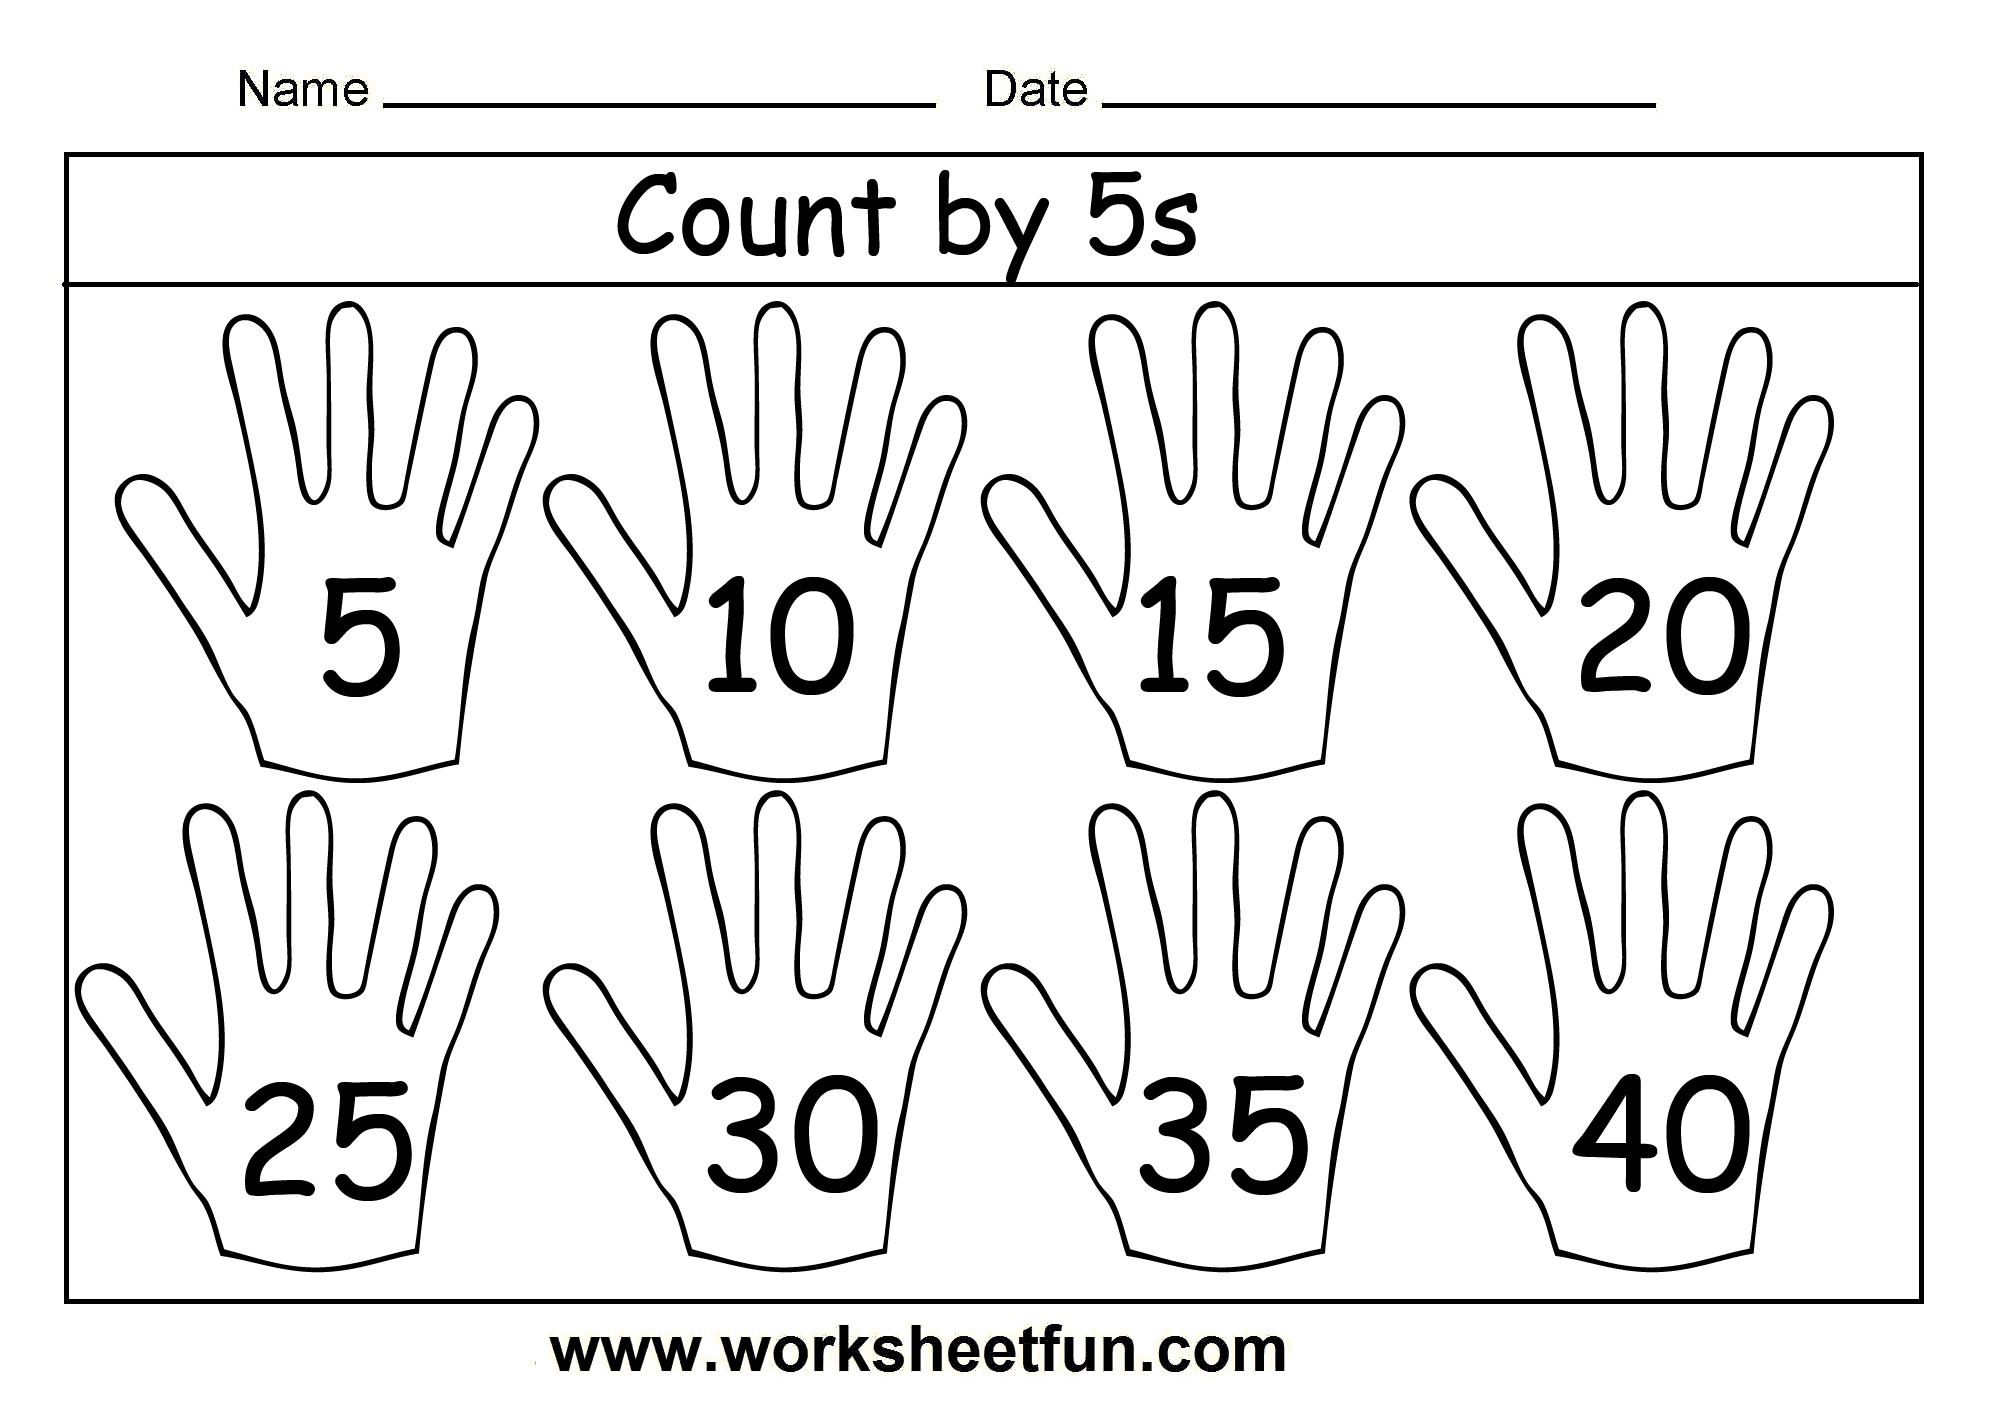 Count By 5s 3 Worksheets